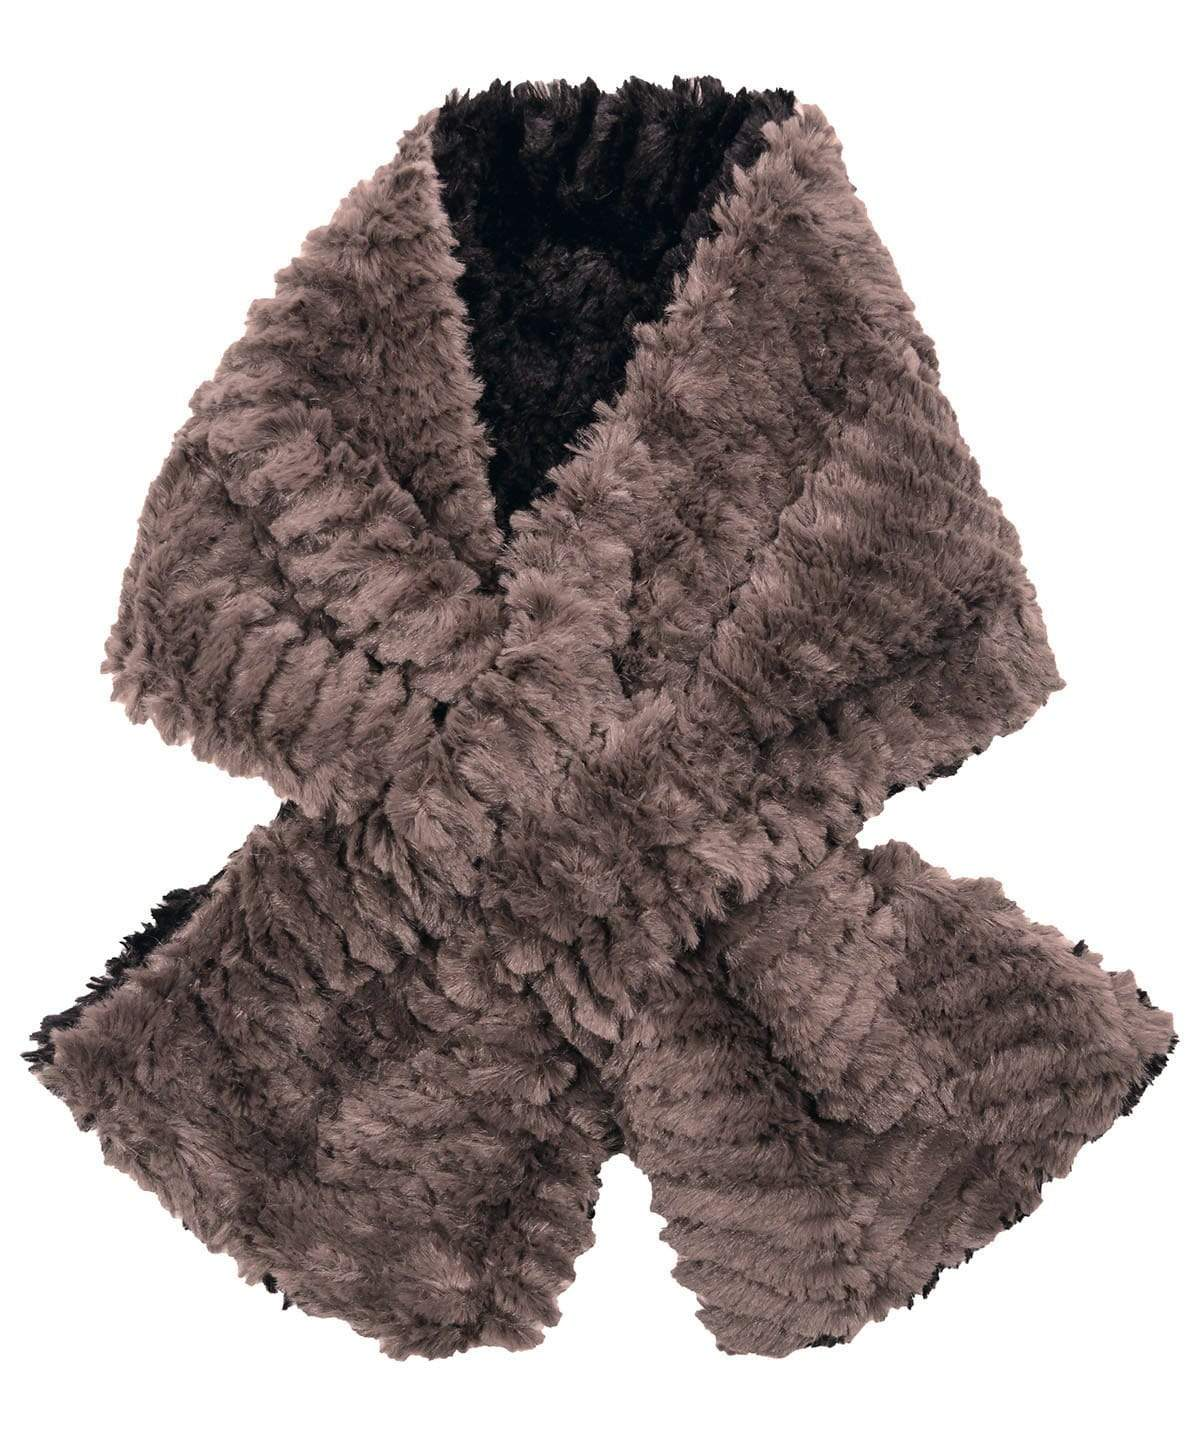 Pull-Thru Scarf - Chevron Faux Fur in Gray and Black